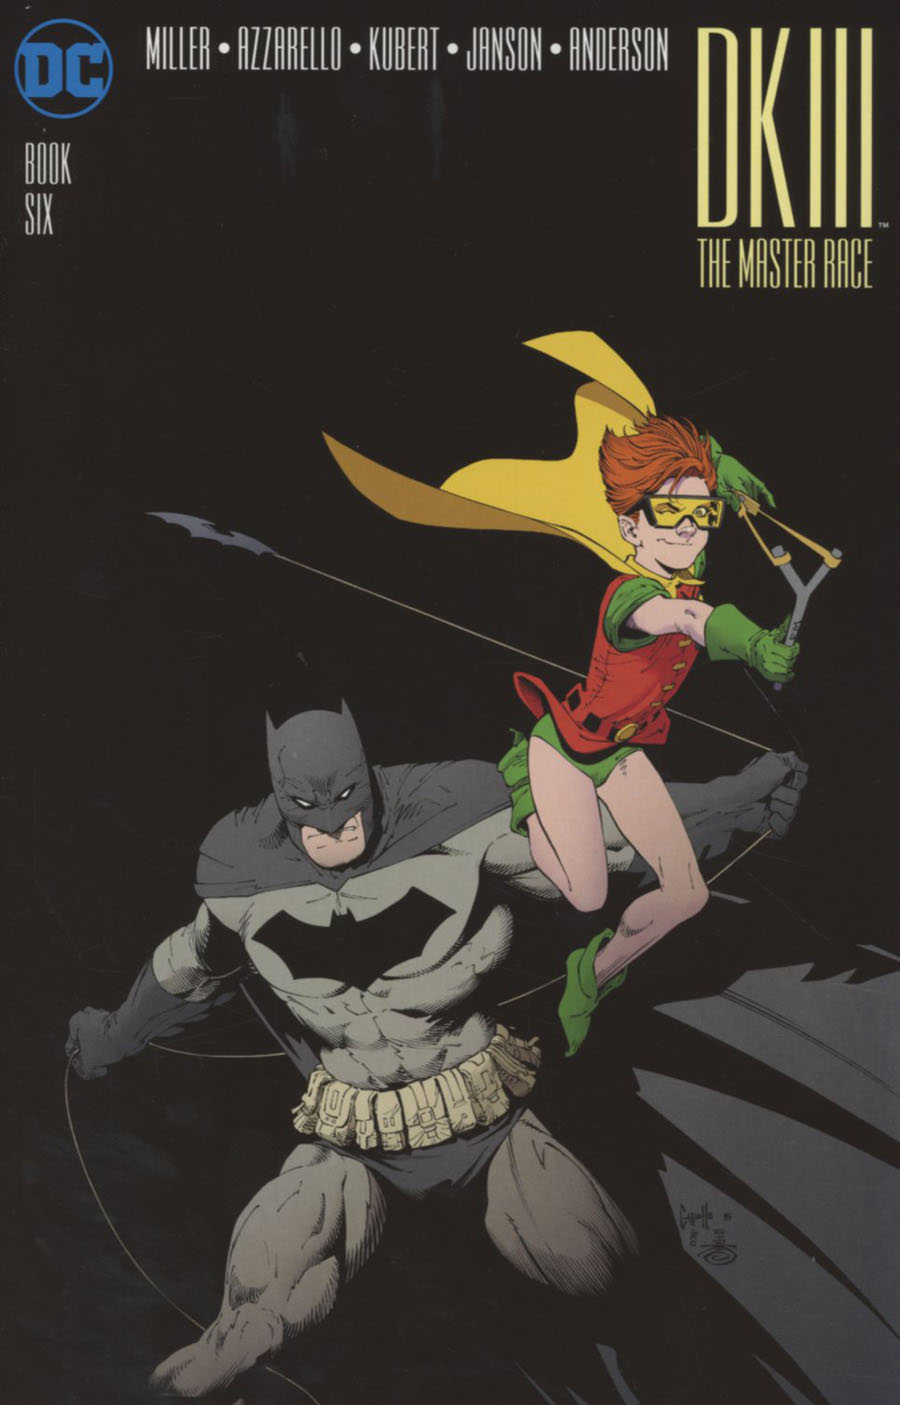 Dark Knight III The Master Race #6 Cover B Midtown Exclusive Greg Capullo Color Variant Cover